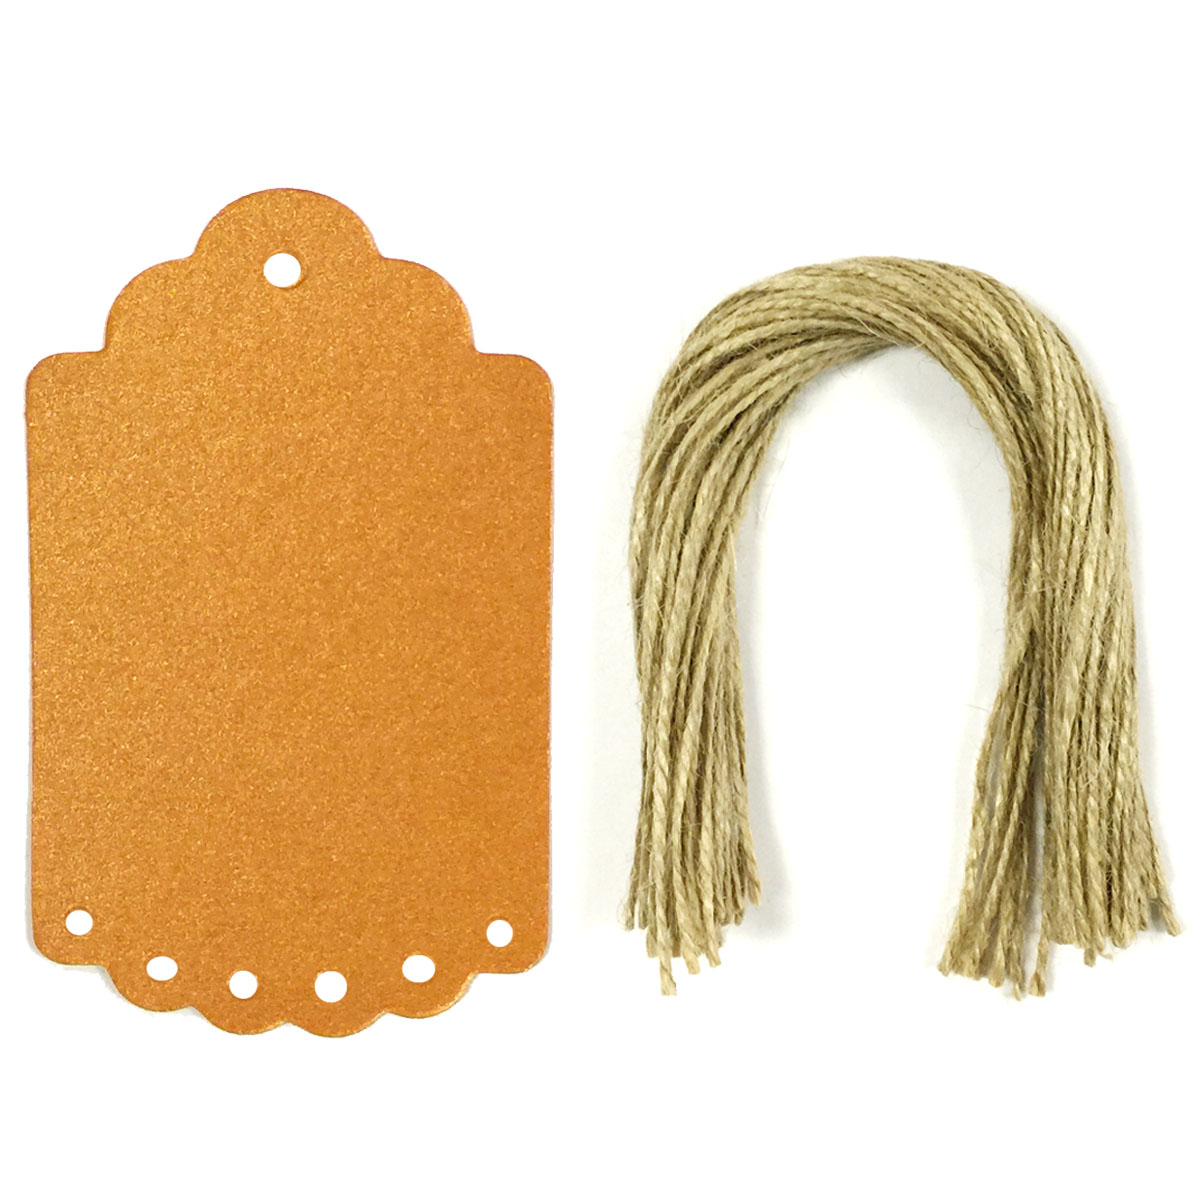 Wrapables® 50 Gift Tags/Kraft Hang Tags with Free Cut Strings for Gifts, Crafts & Price Tags, Large Scalloped Edge (Shimmer Orange)